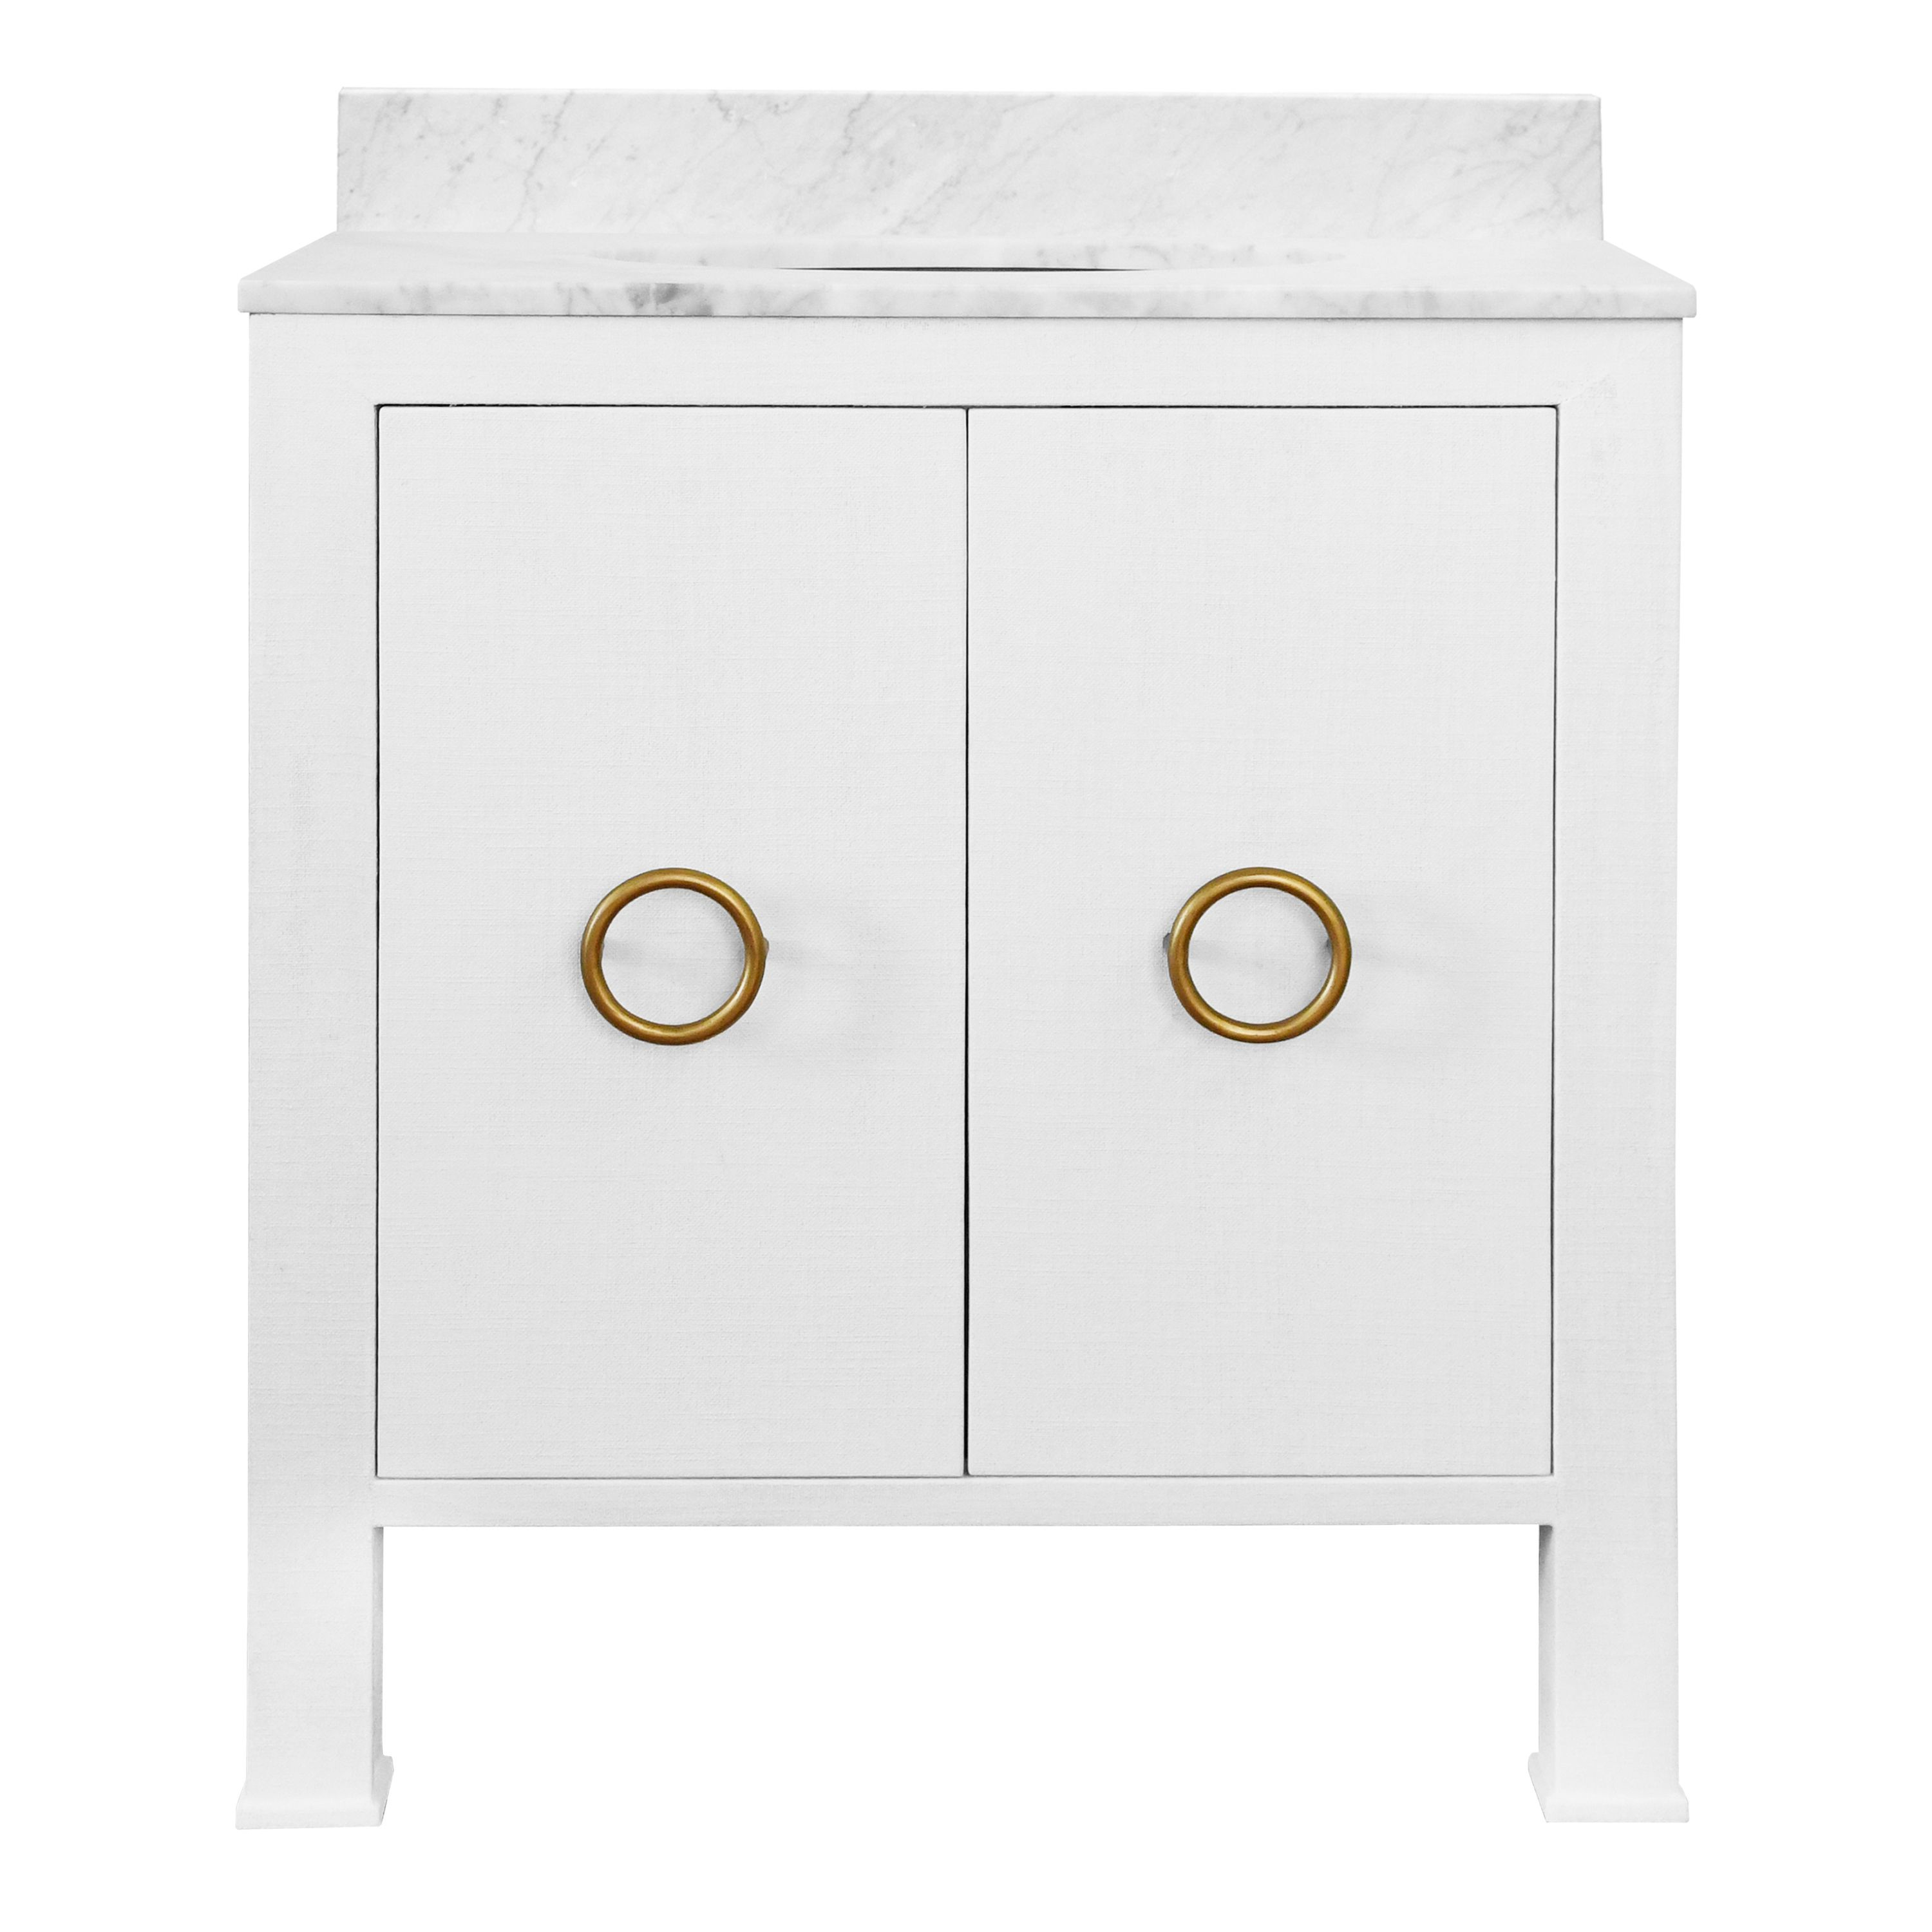 """30"""" Issac Edwards Collection Bath Vanity in Textured White Linen w/ Antique Brass Hardware, White Marble Top and Porcelain Sink"""